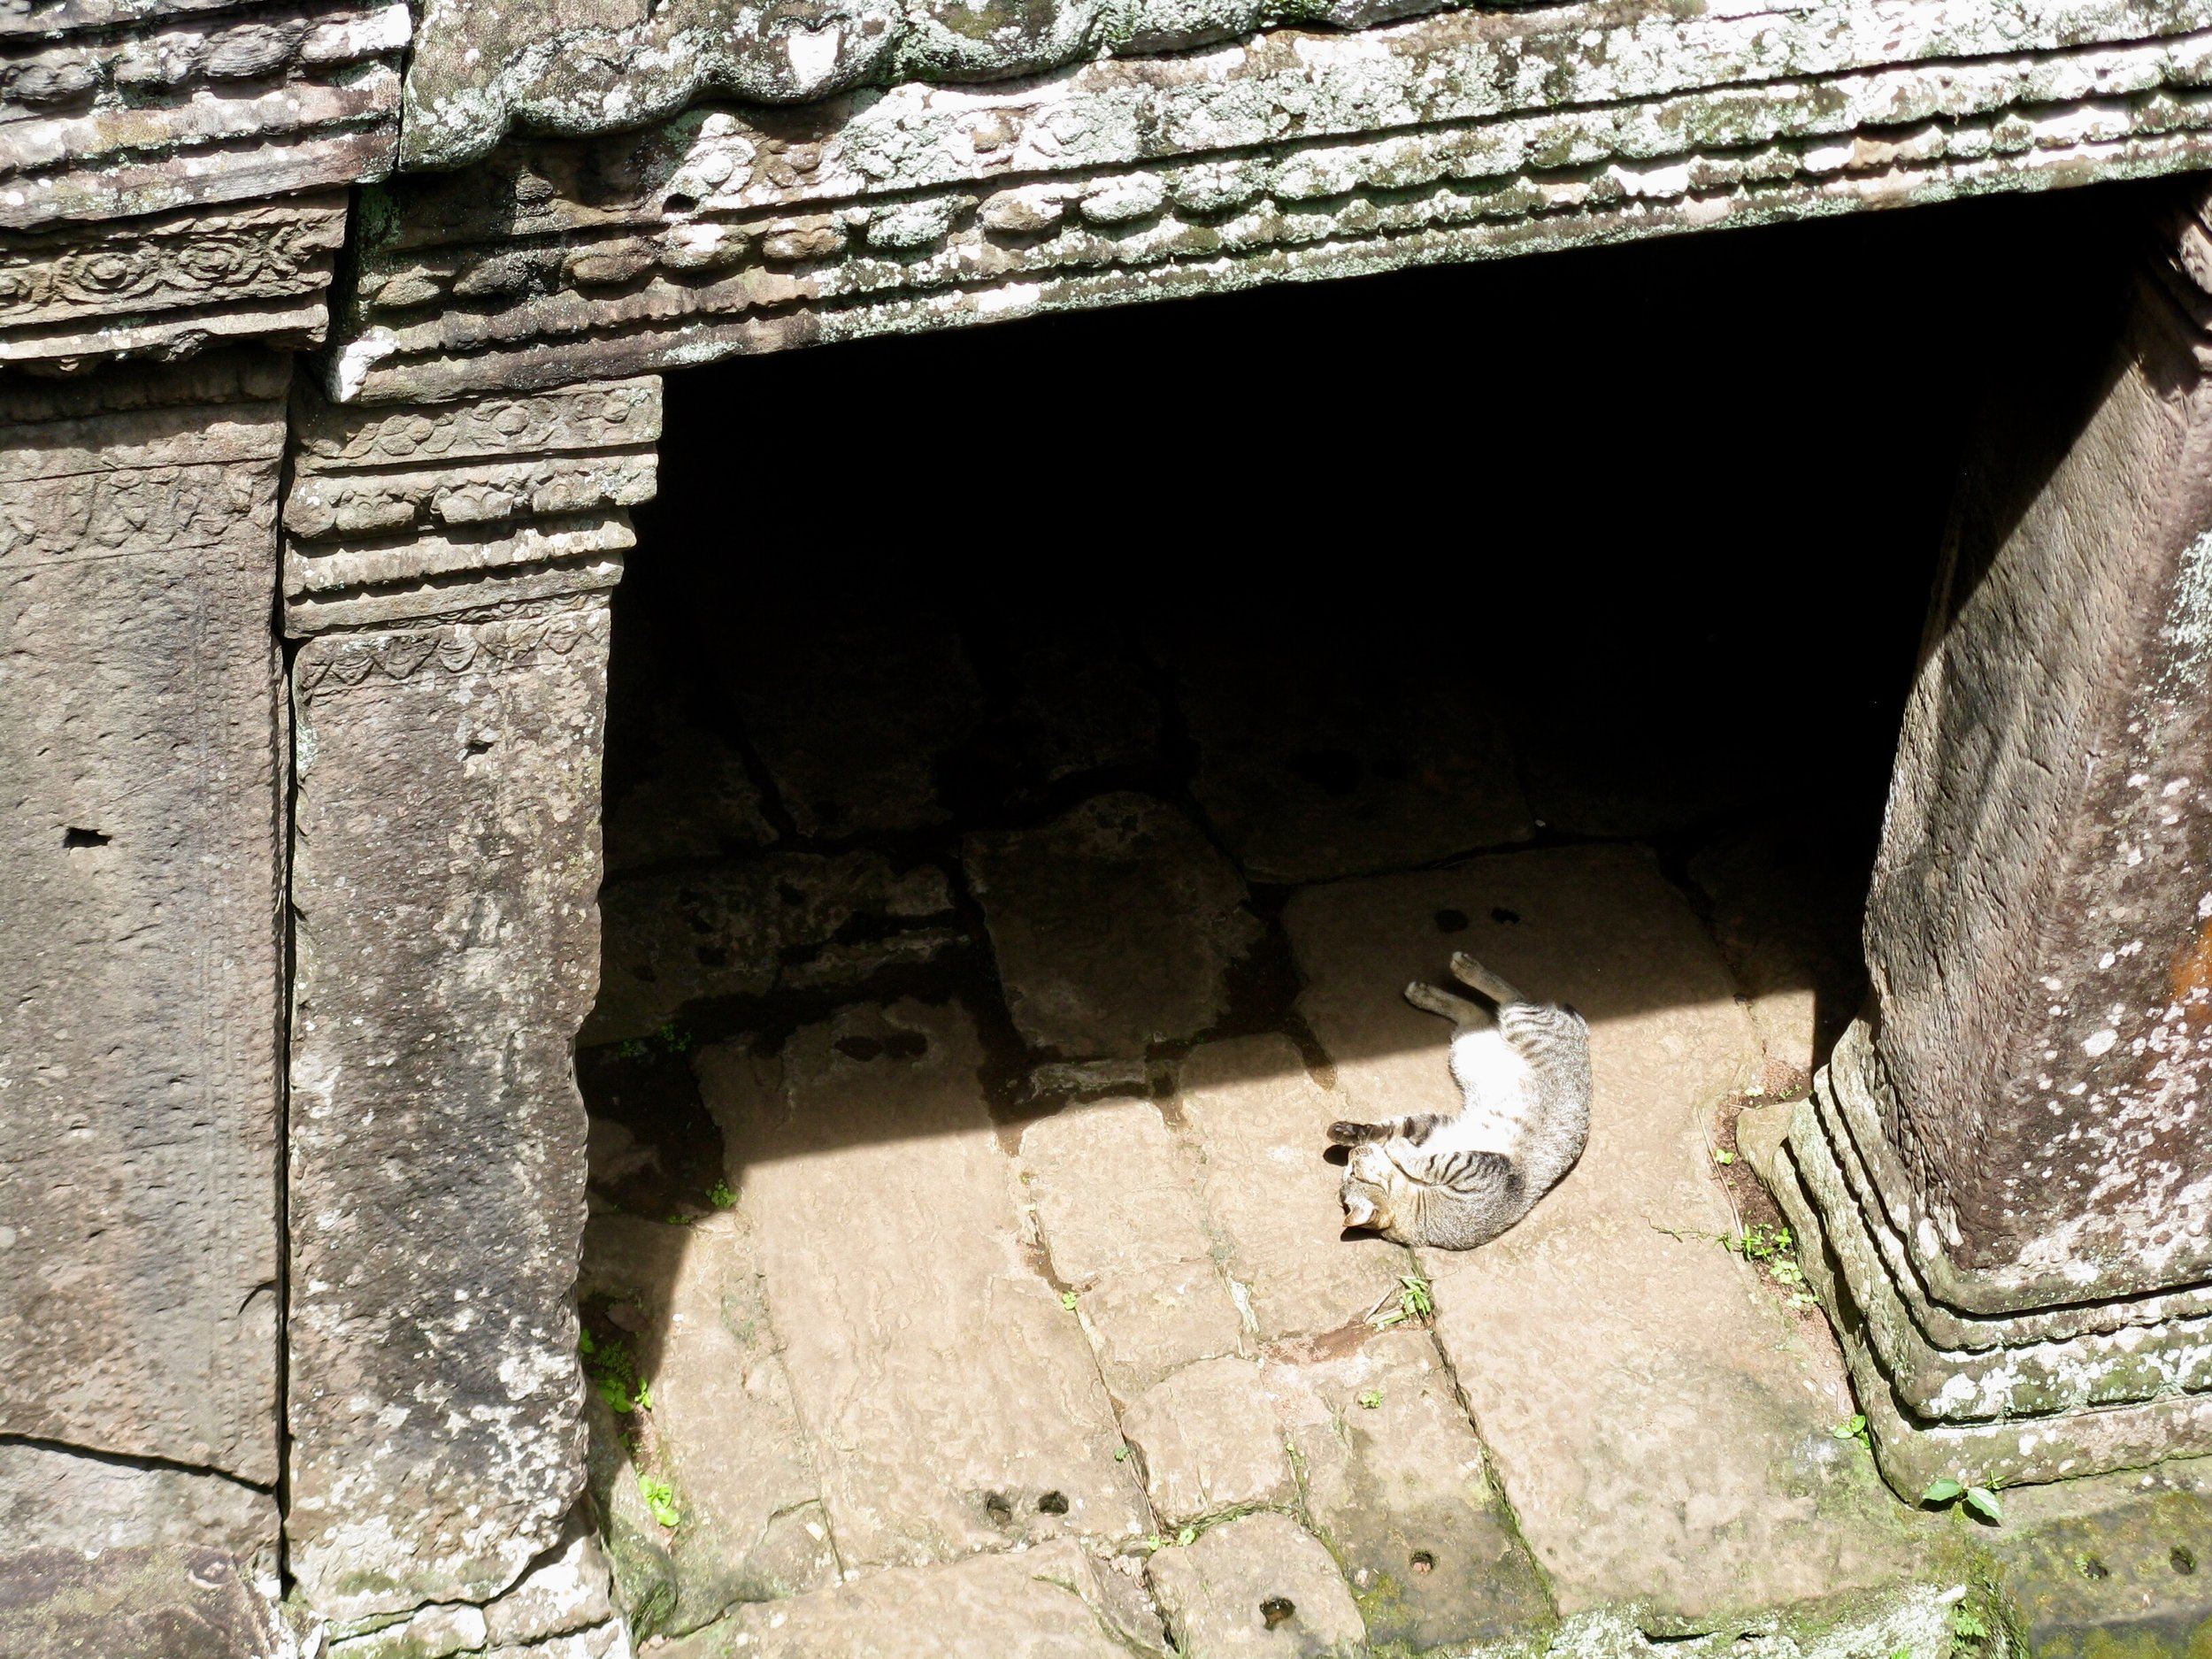 Prasat Bayon is the purrfect place for a catnap